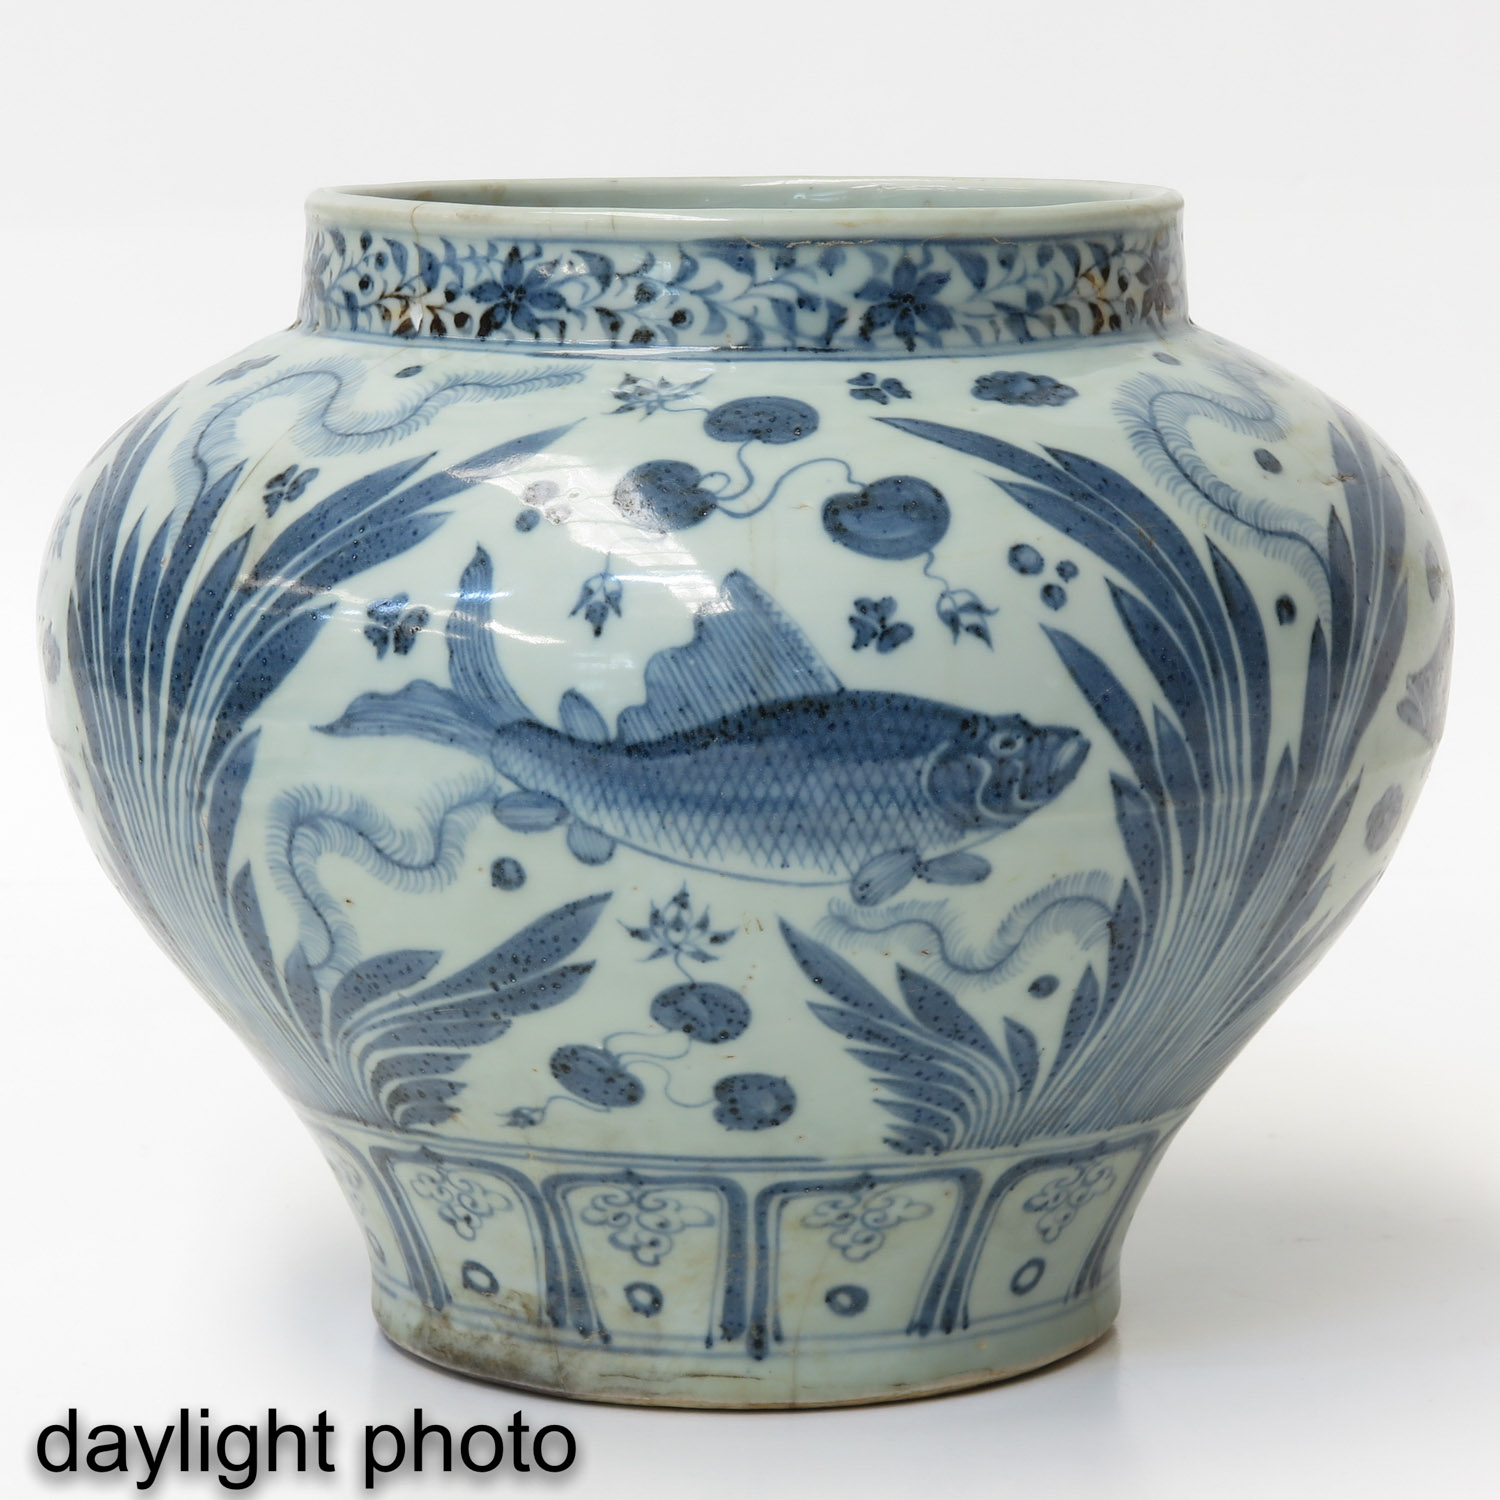 A Blue and White Jar - Image 7 of 9